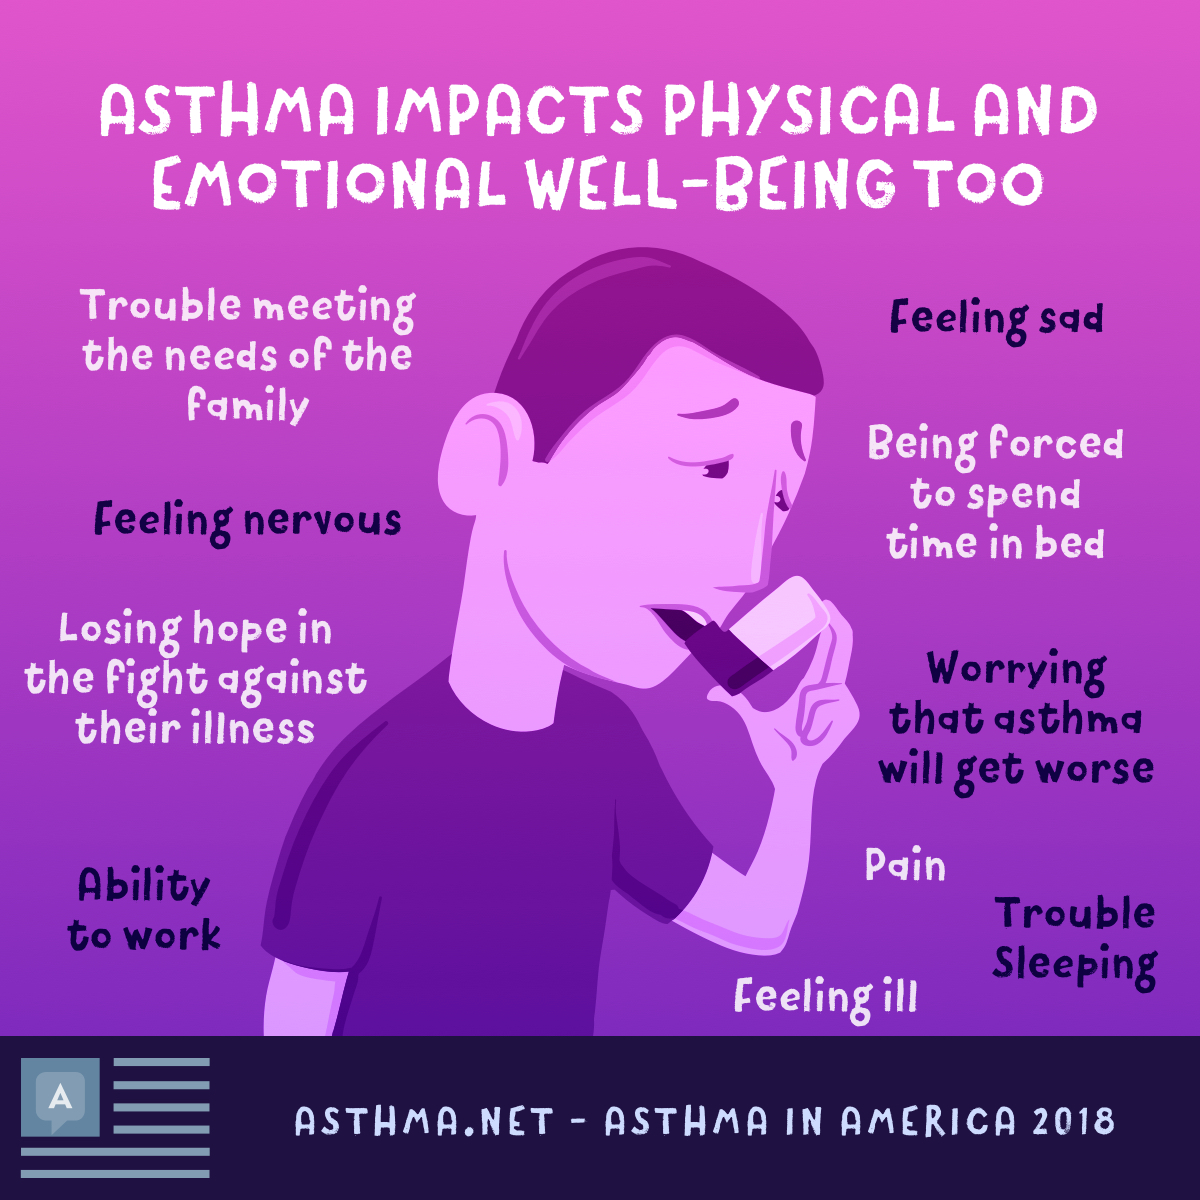 Asthma symptoms impact physical and emotional well-being